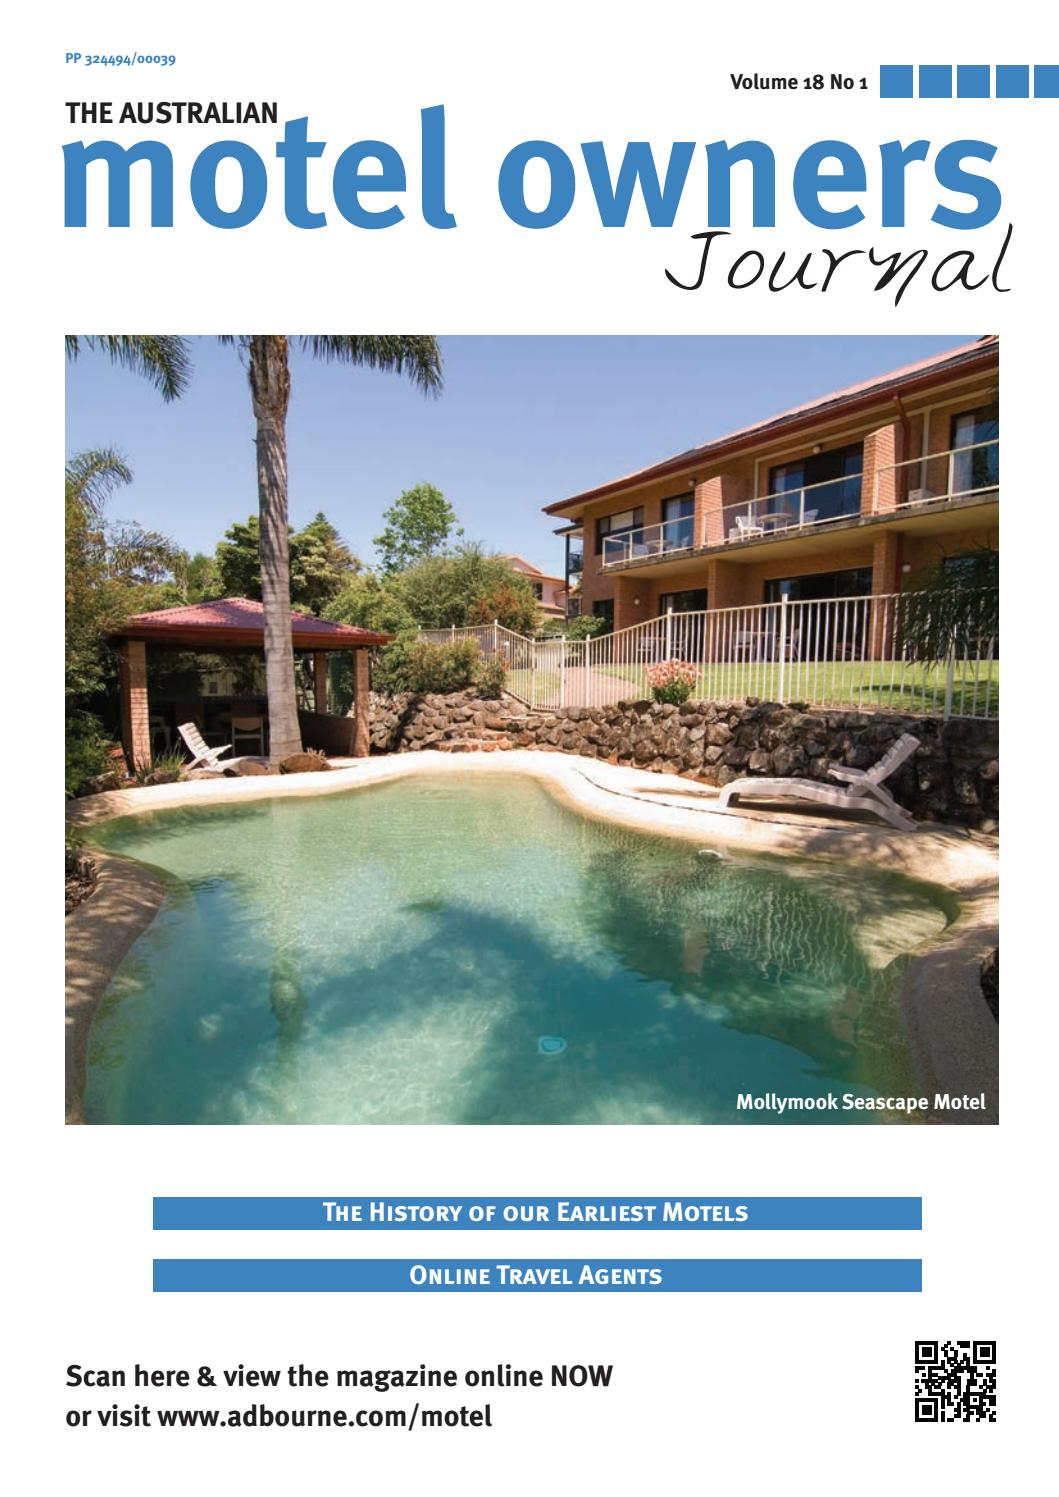 130b3d0ef0 Motel Owners Journal Volume 18 by Adbourne Publishing - issuu